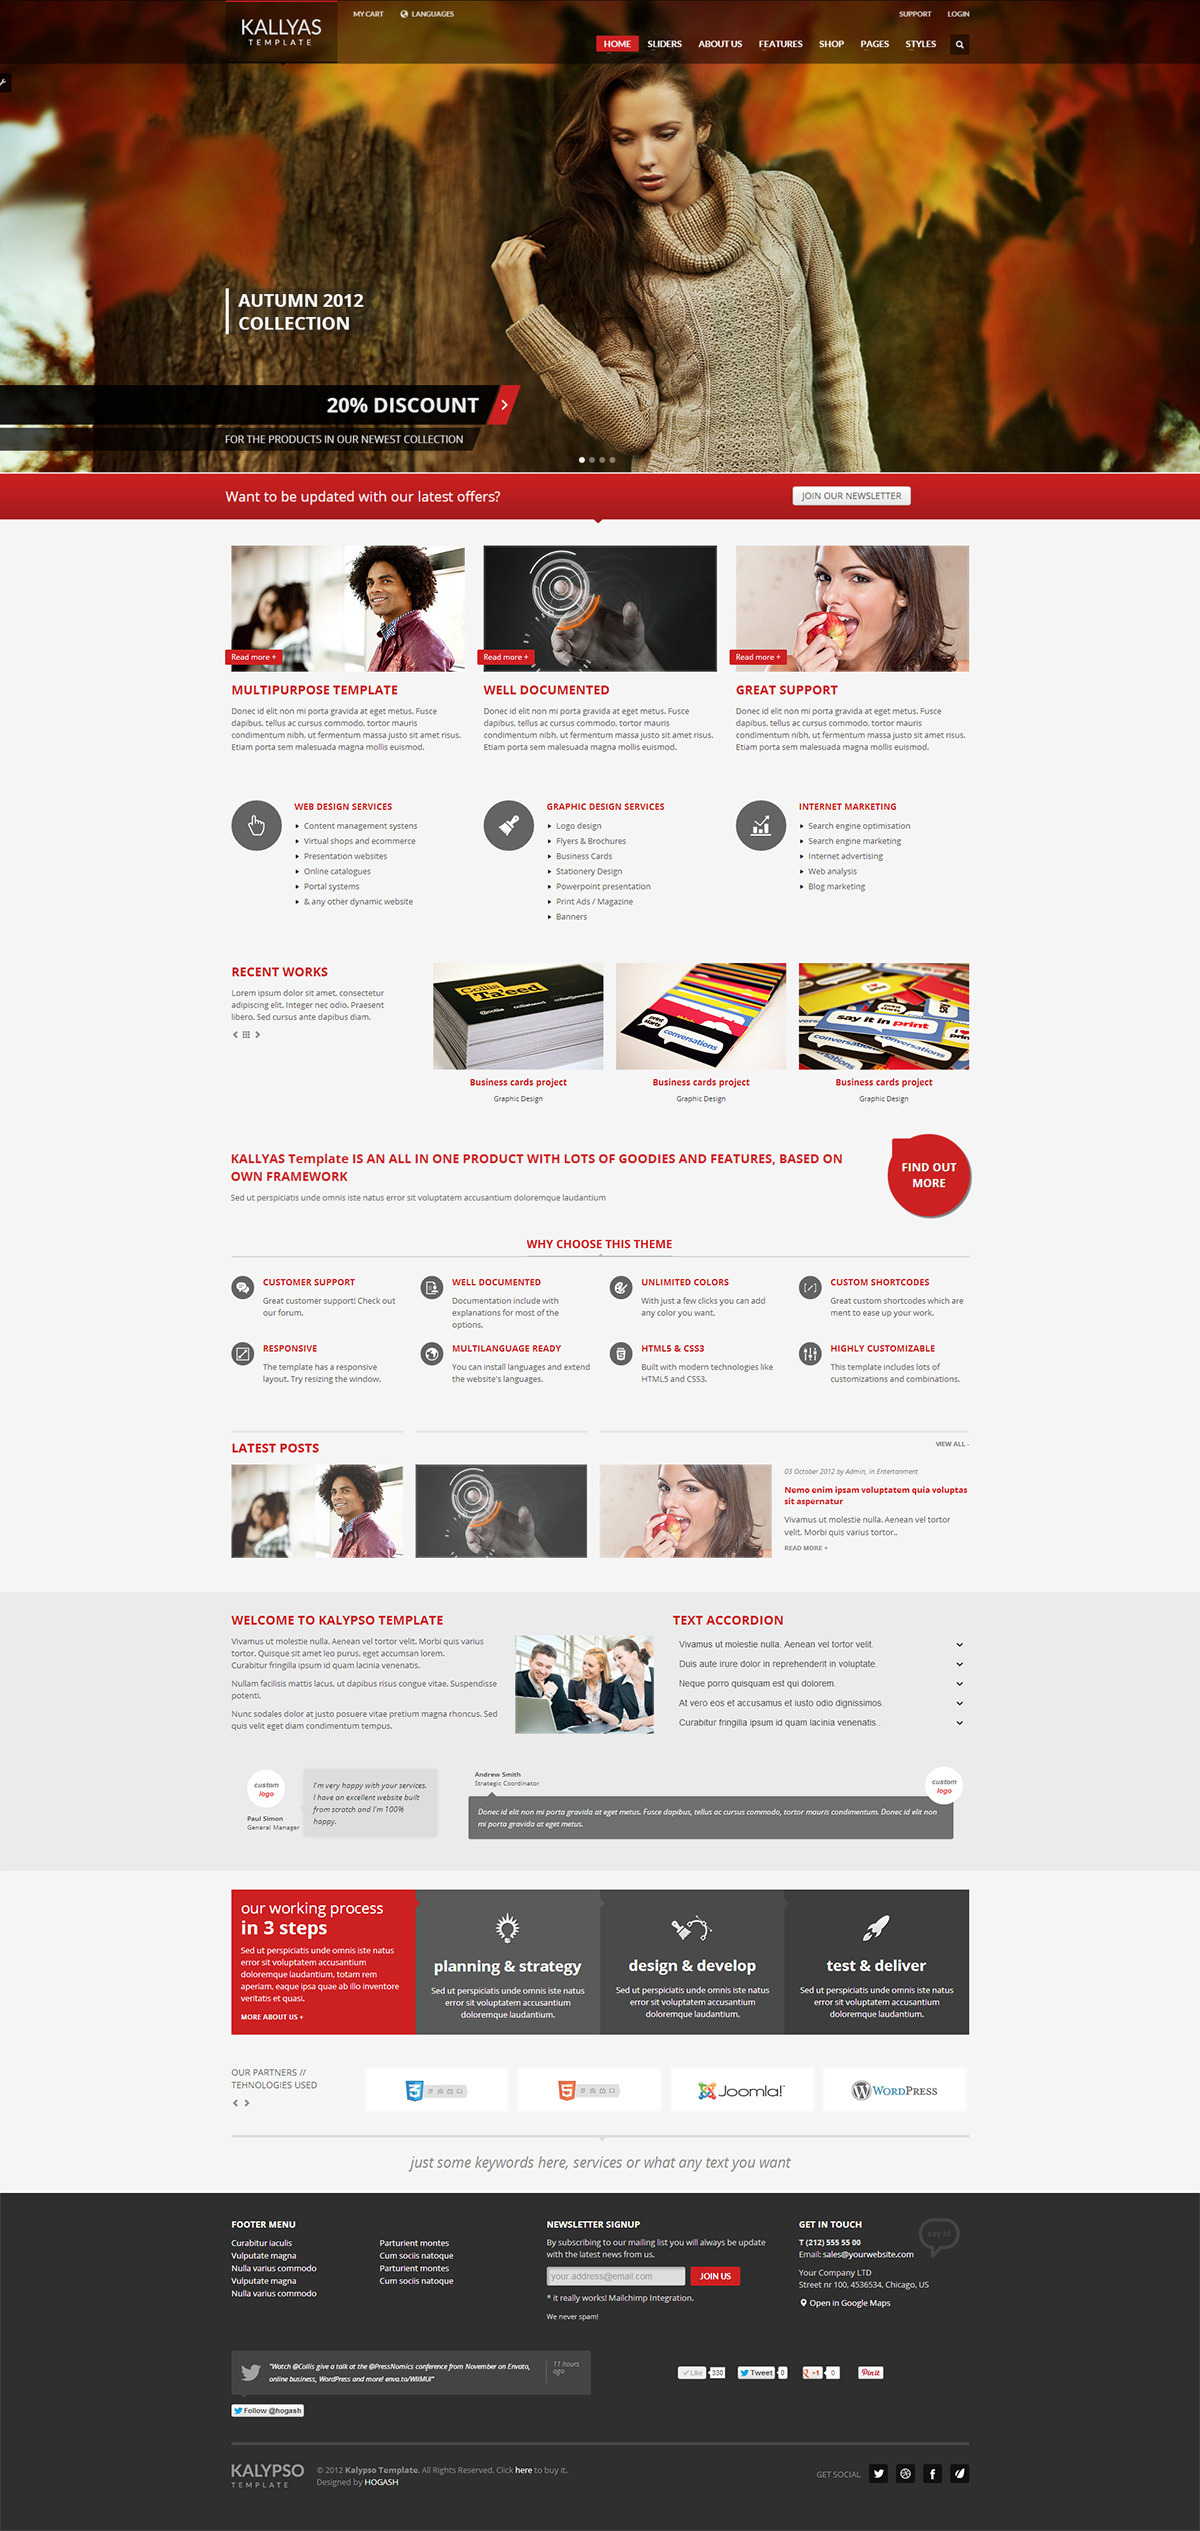 KALLYAS Responsive Multi-purpose Joomla Template - GENERAL PAGE - HOMEPAGE - MAIN SLIDER